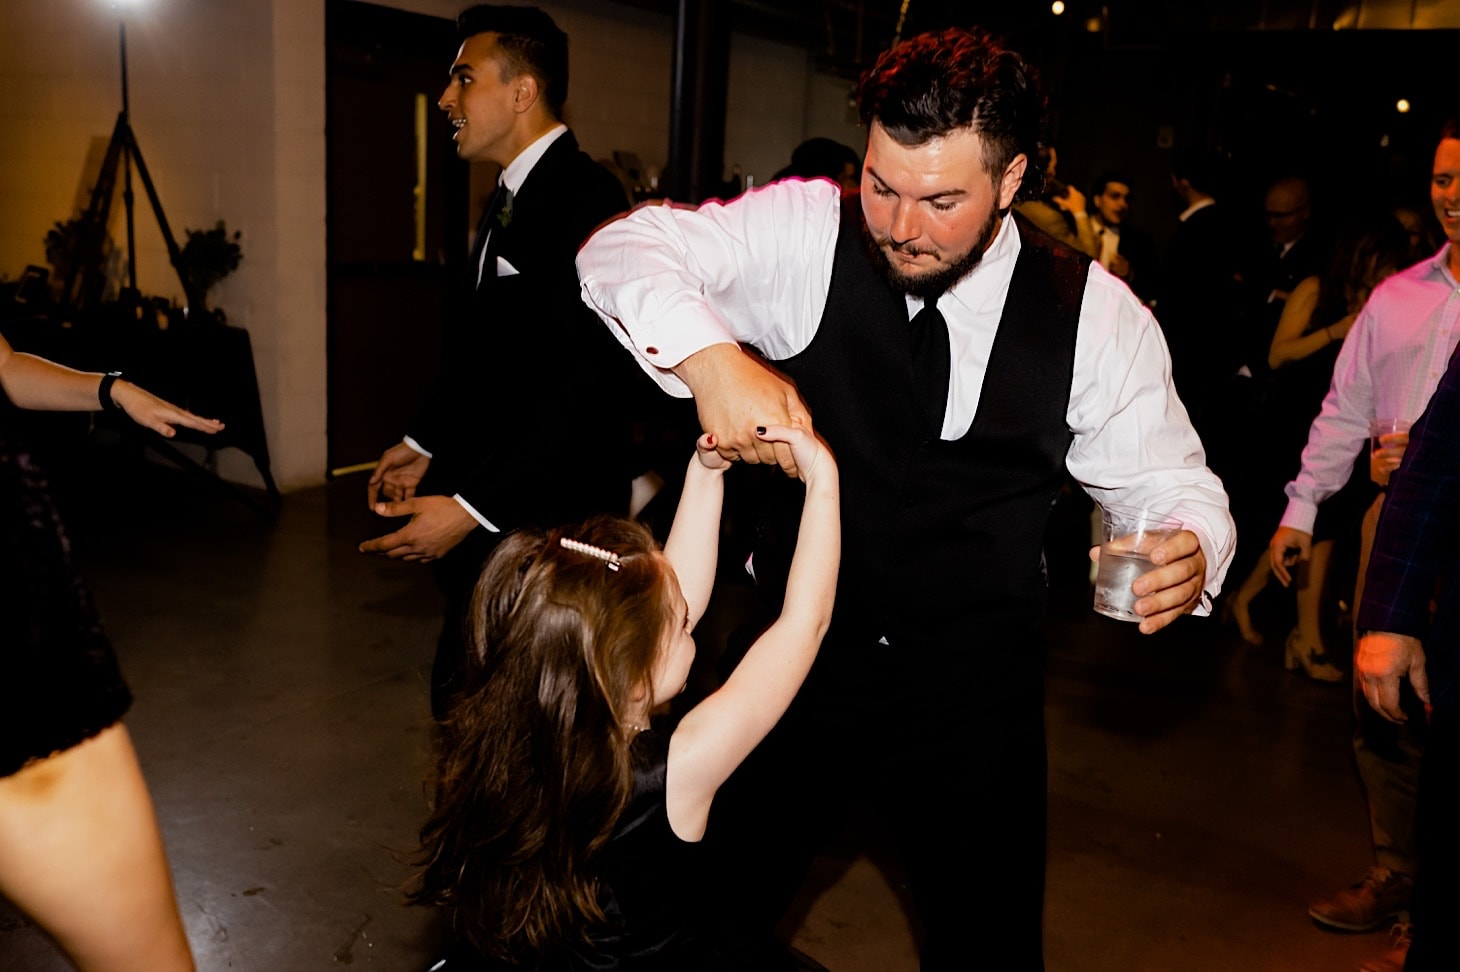 wedding dance at downtown Des Moines wedding